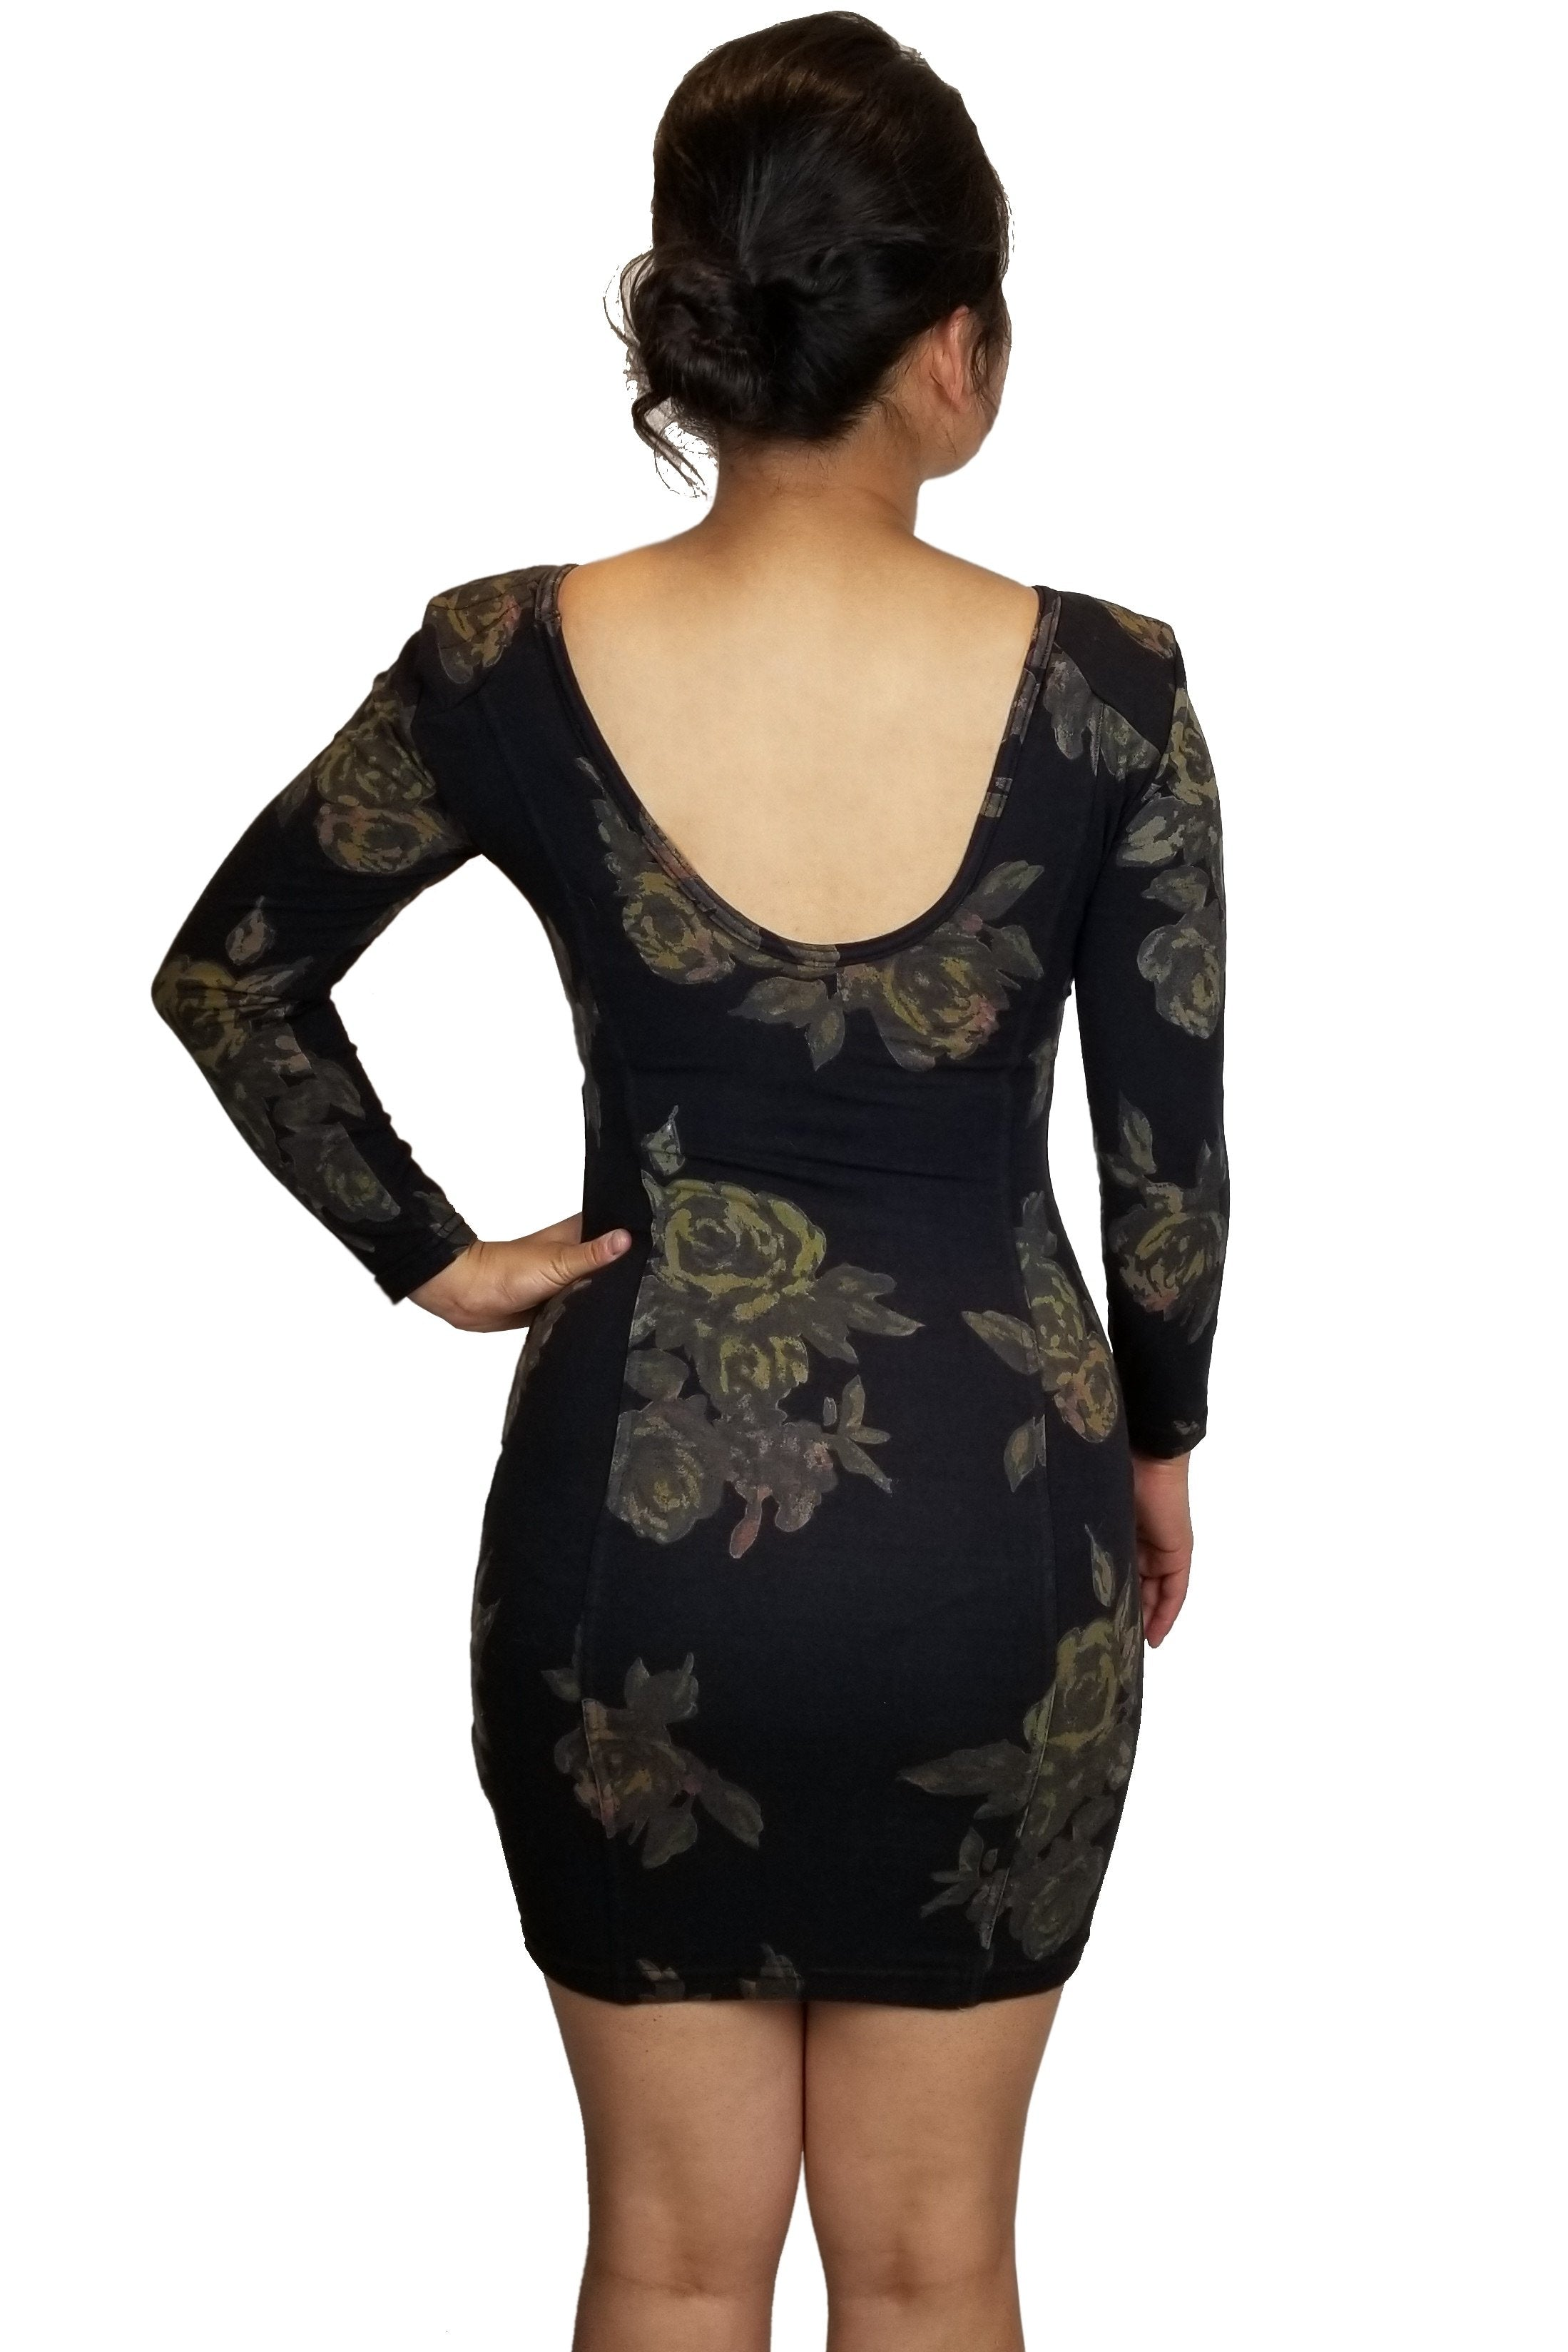 Wilfred Scoop Back Black floral dress, Body hugging dress with scoop back and a unique floral design, all for you to show the edges and curves!, Black, 92% Cotton 6% Spandex, Shoulder fill: 100% Polyester, Dress, scoop back dress, soft dress, body hugging dress